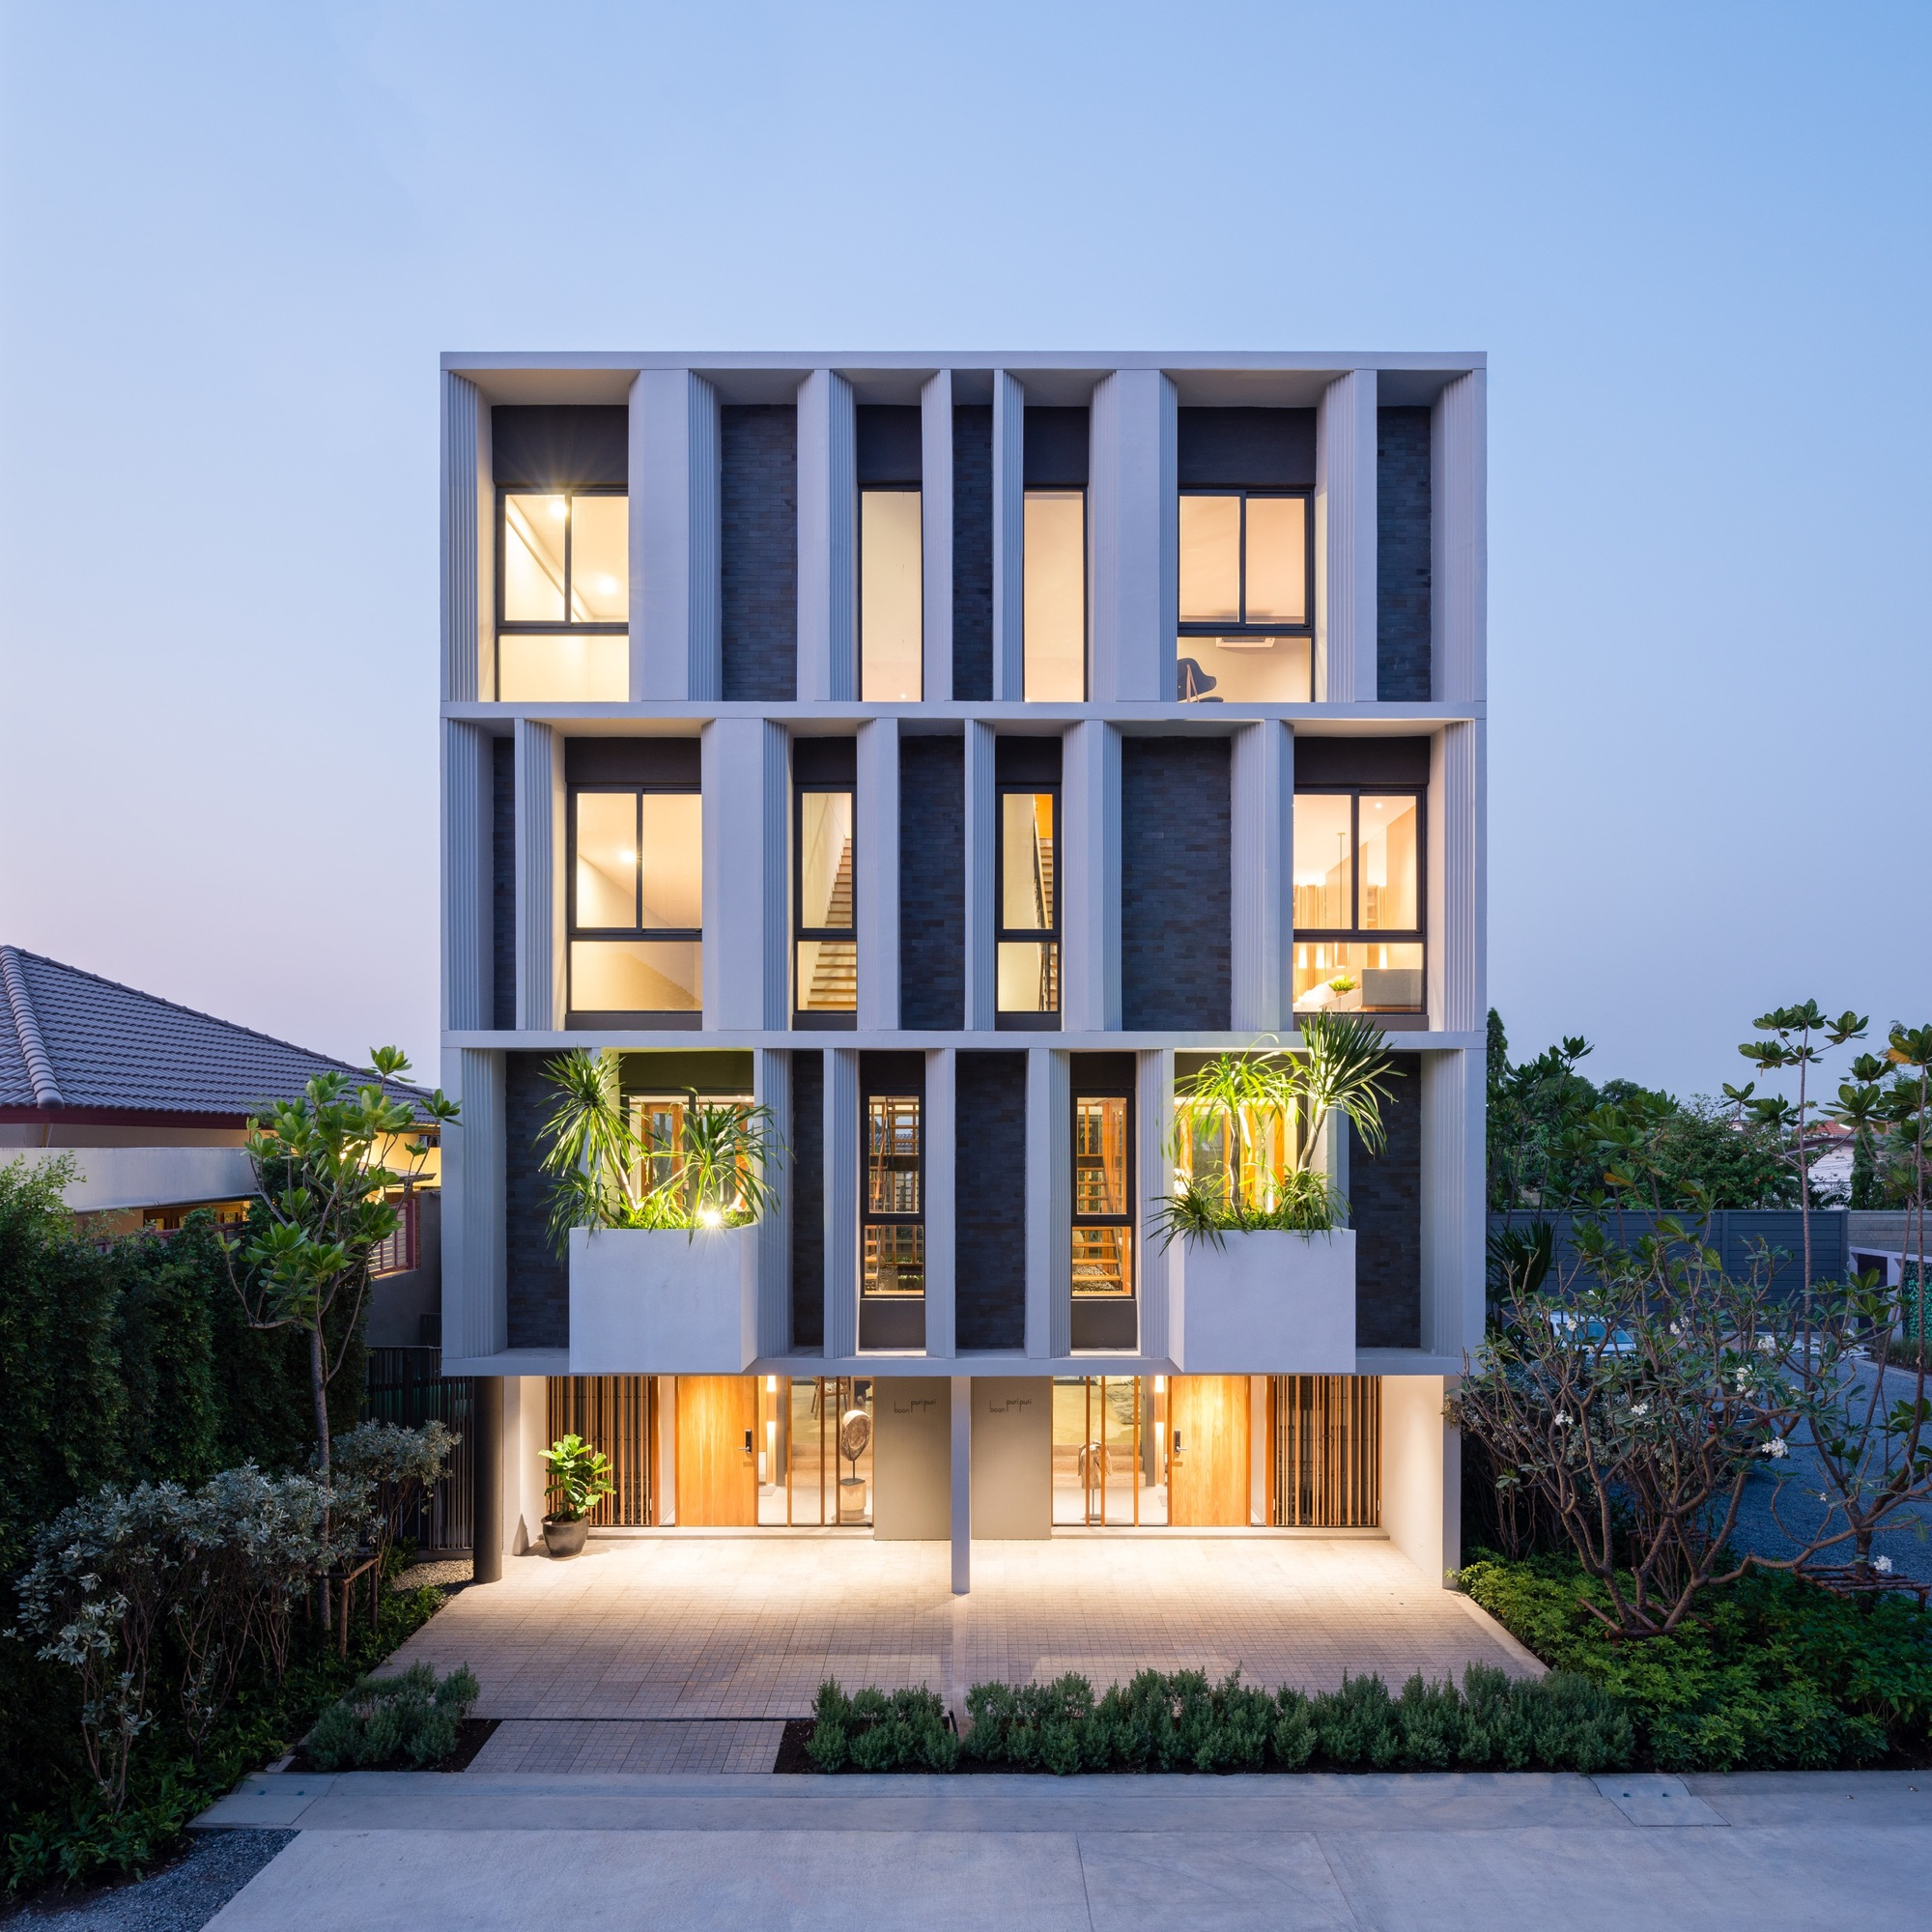 Towns Homes For Rent: Townhouse With Private Garden / Baan Puripuri